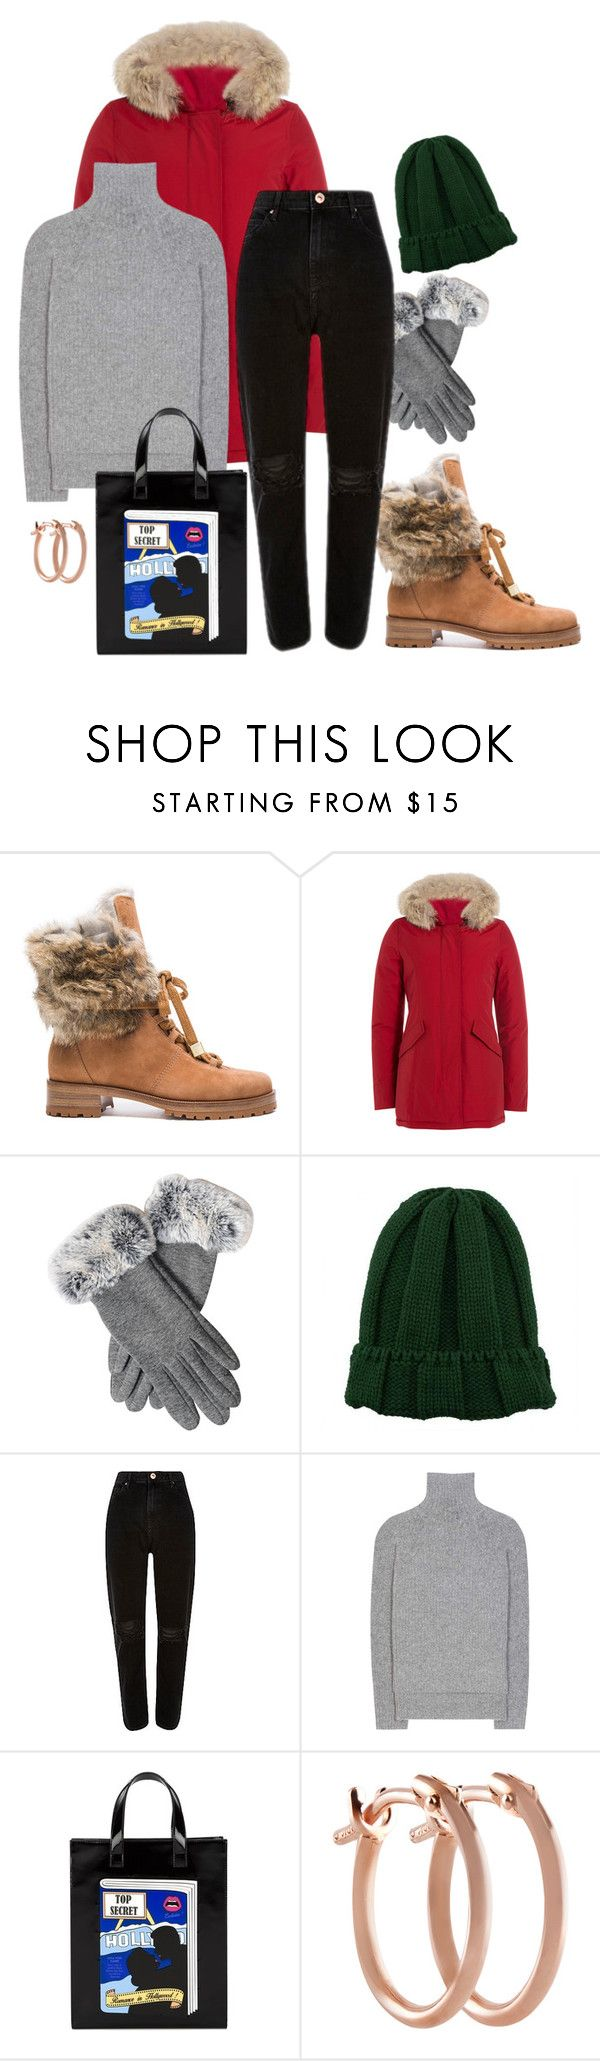 """Roast &  Potatoes"" by chelsofly on Polyvore featuring Alexandre Birman, Woolrich, Haider Ackermann, Yazbukey and Pori"